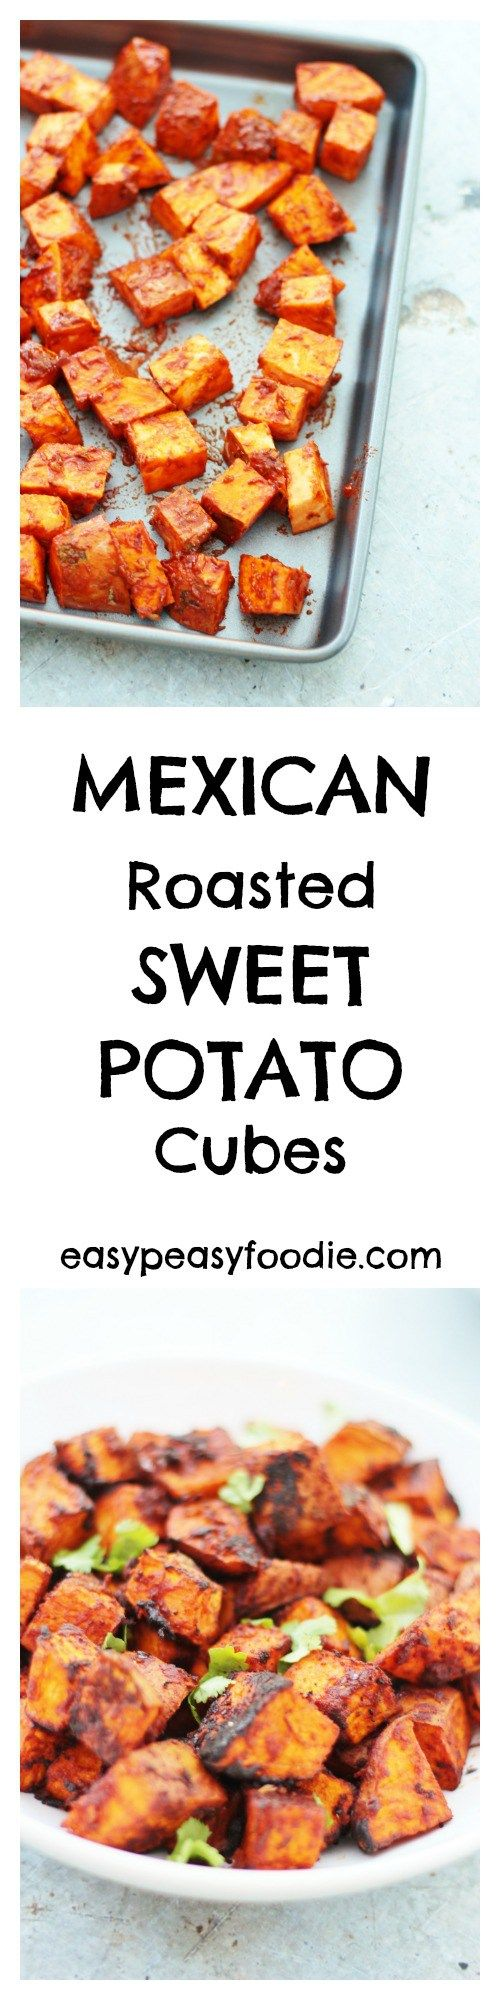 Delicious cubes of sweet potato, coated in spices, garlic and lime juice and roasted in the oven for just 20 minutes, these Mexican Roasted Sweet Potato Cubes make a delicious side dish for tacos, fajitas and BBQs.